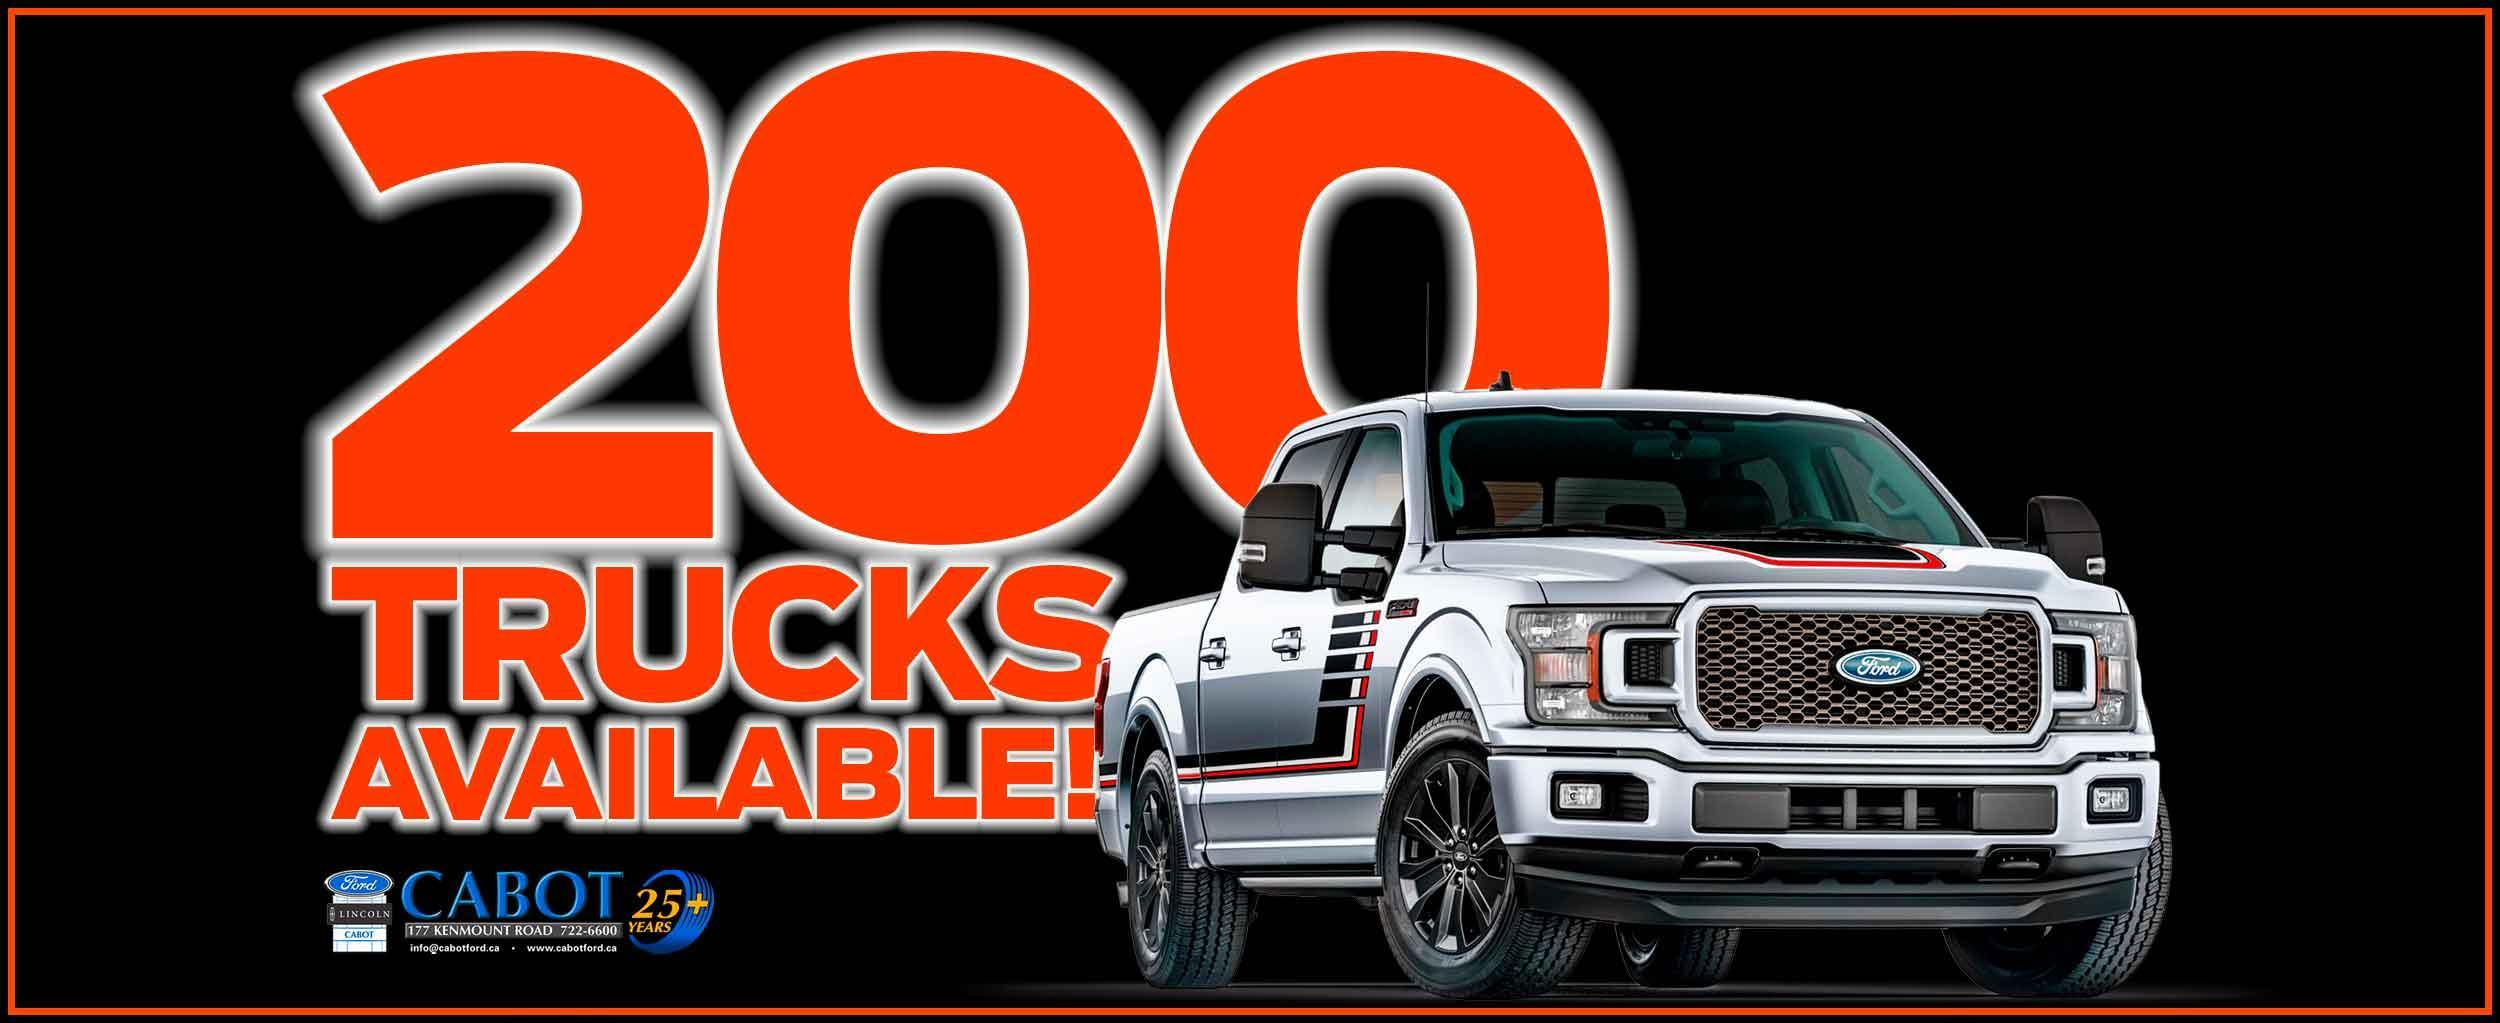 F-150! Super Duty! Ranger! See our incredible selection of 2020 trucks with the models, features, colours, and trim packages you JUST WON'T FIND ANYWHERE ELSE!